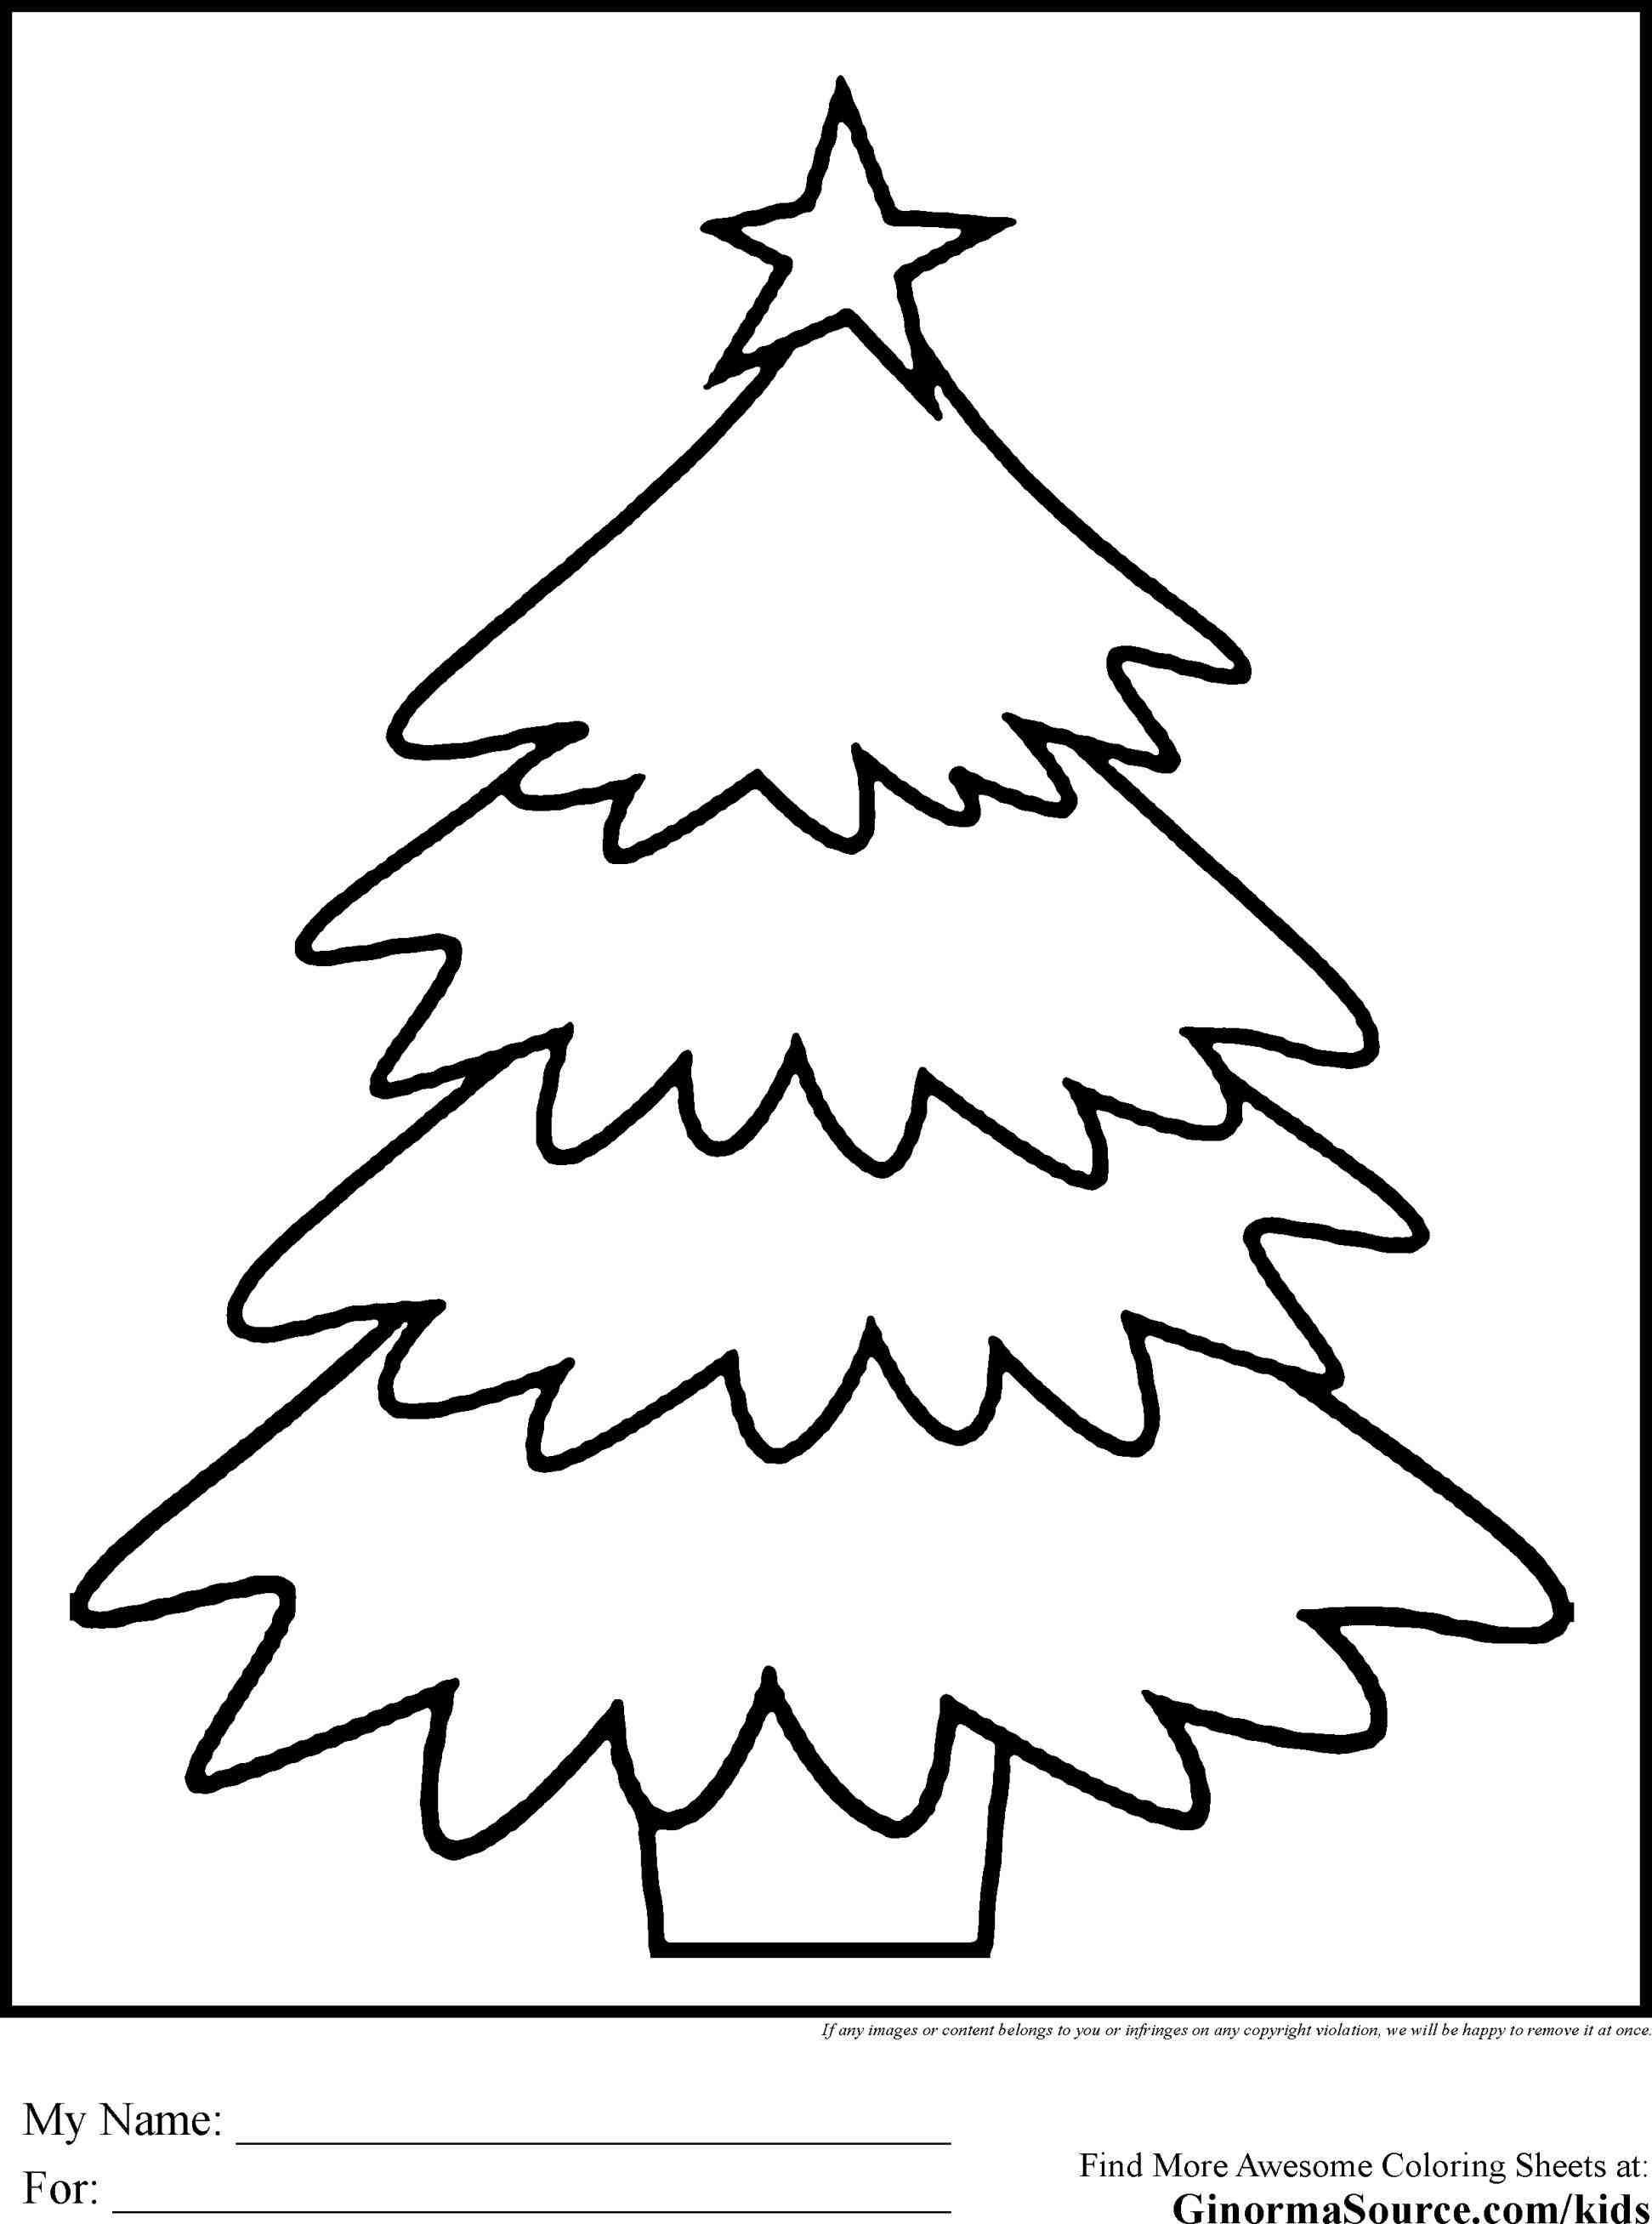 how to draw pine trees step by step how to draw a pine tree step by step drawing tutorials how step to pine by trees step draw